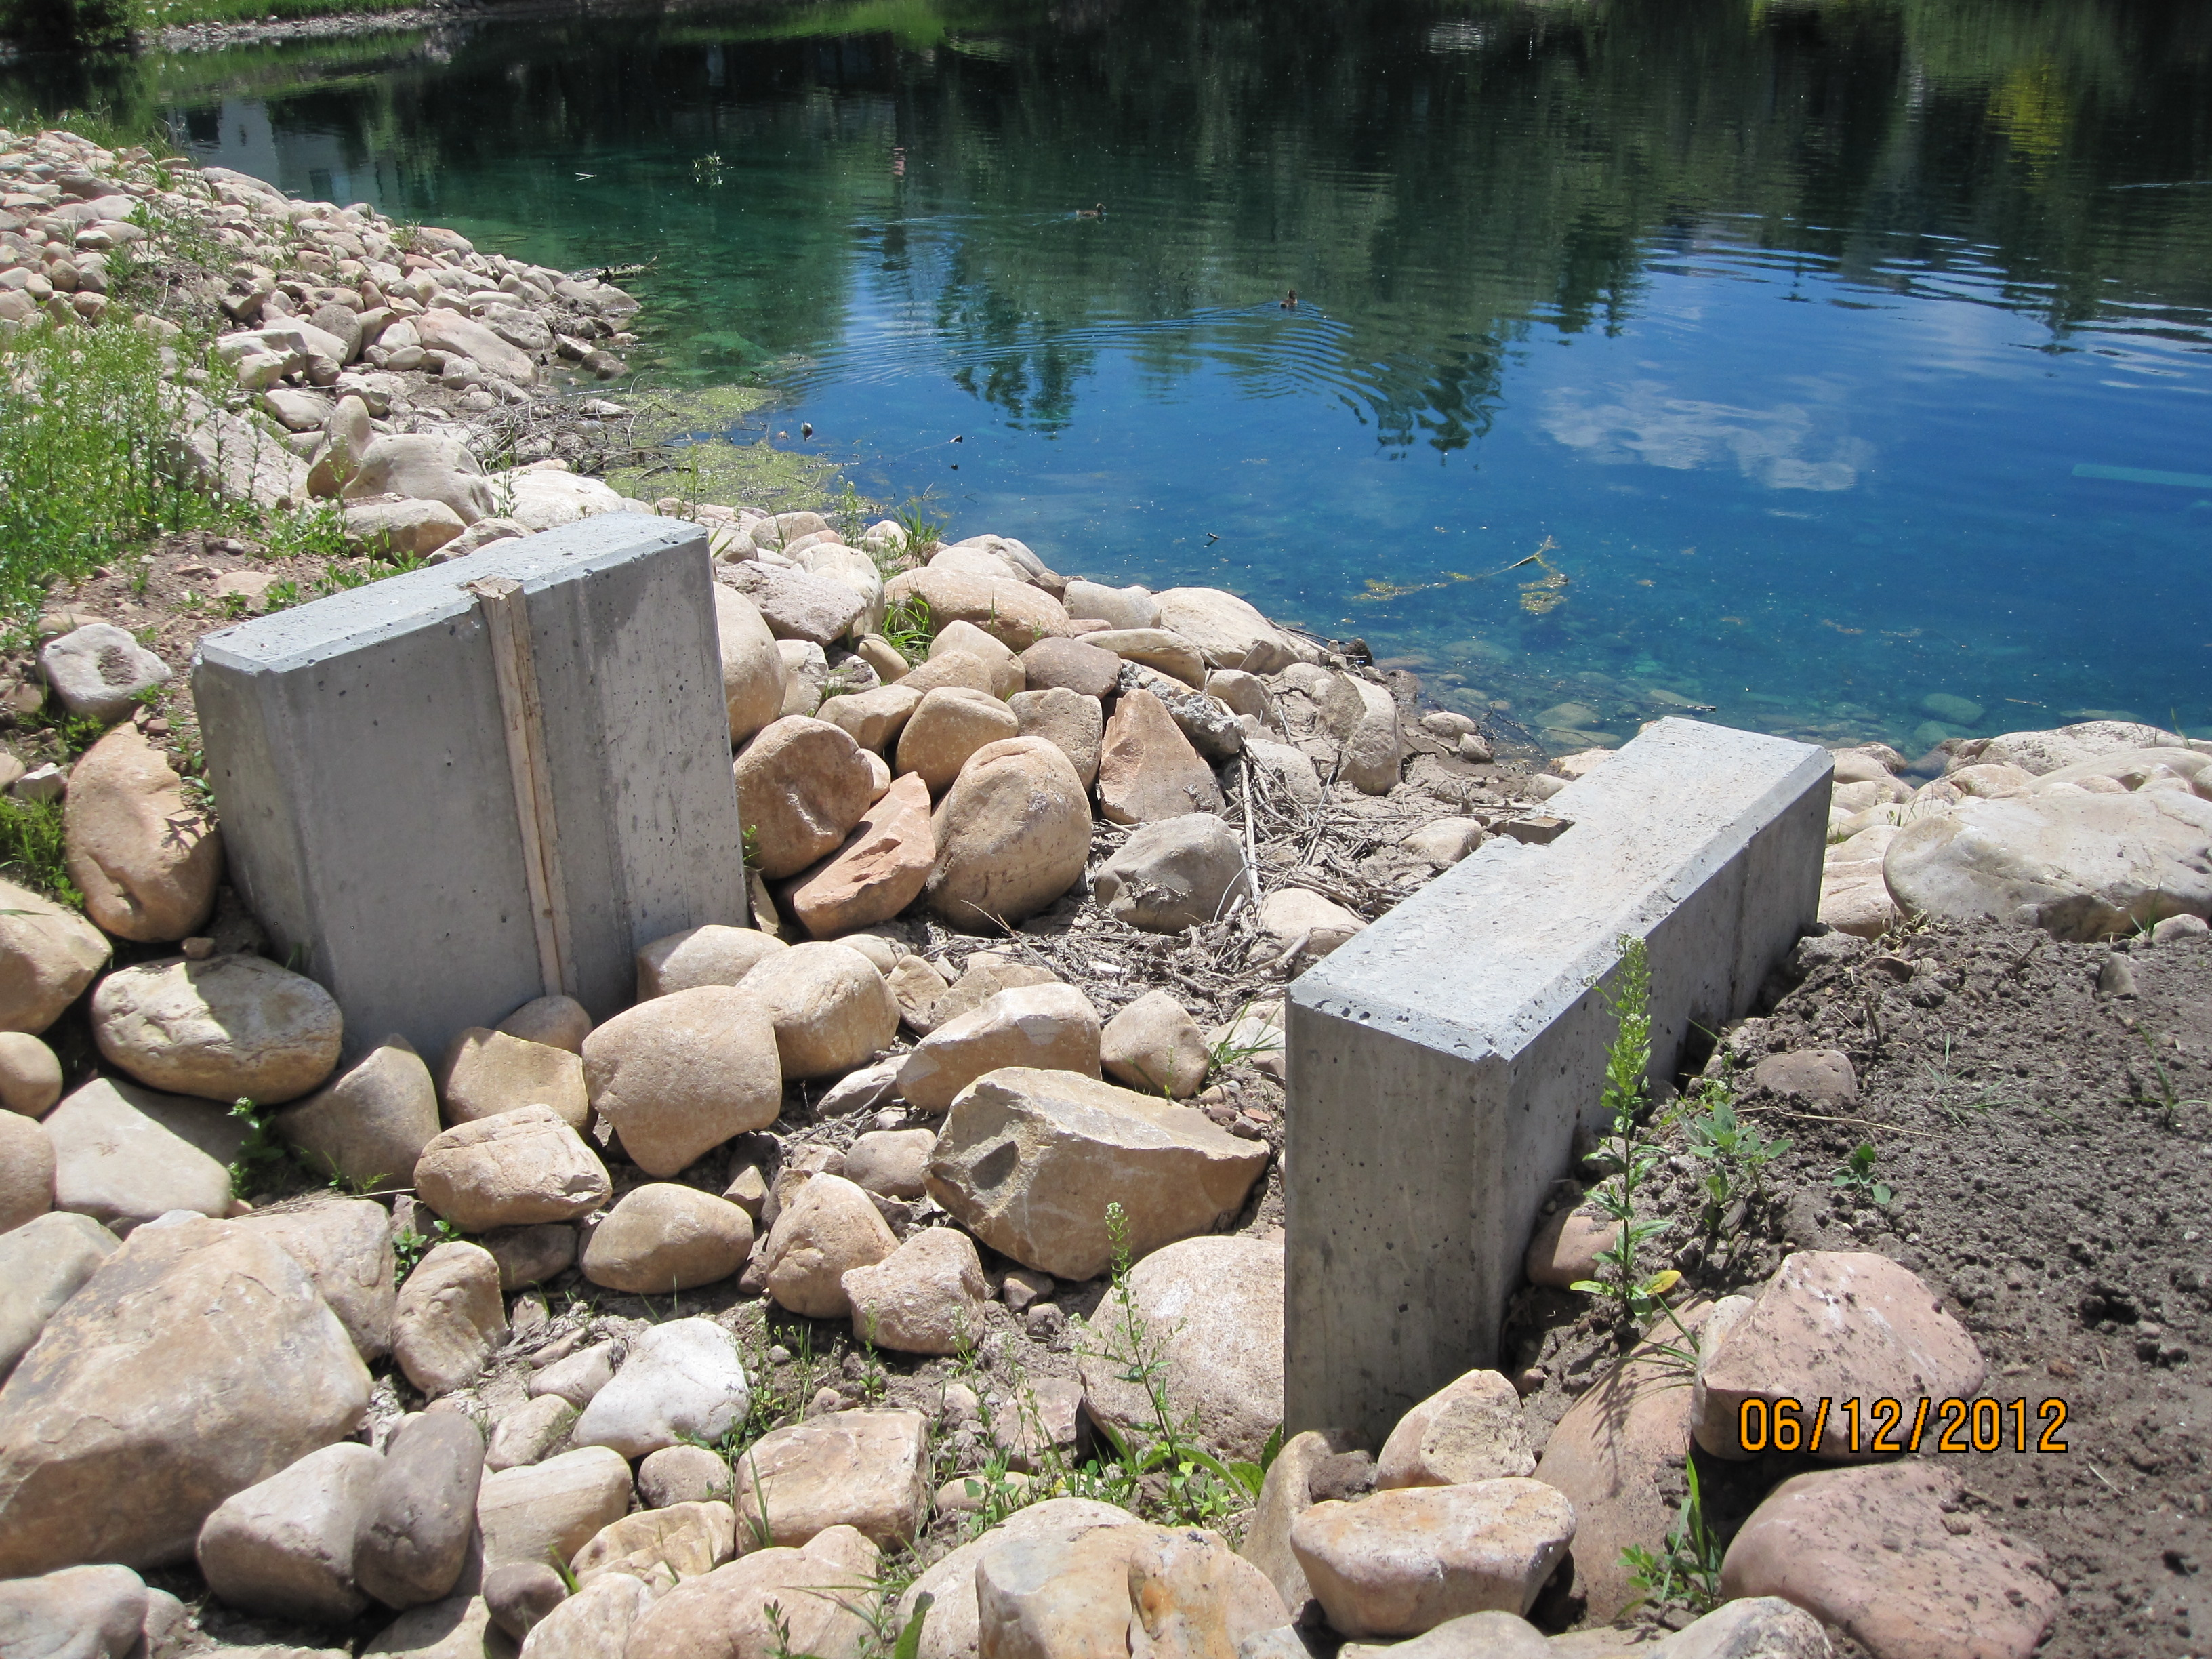 2012 Small lake gate built too high to allow water flow to Parcel V.